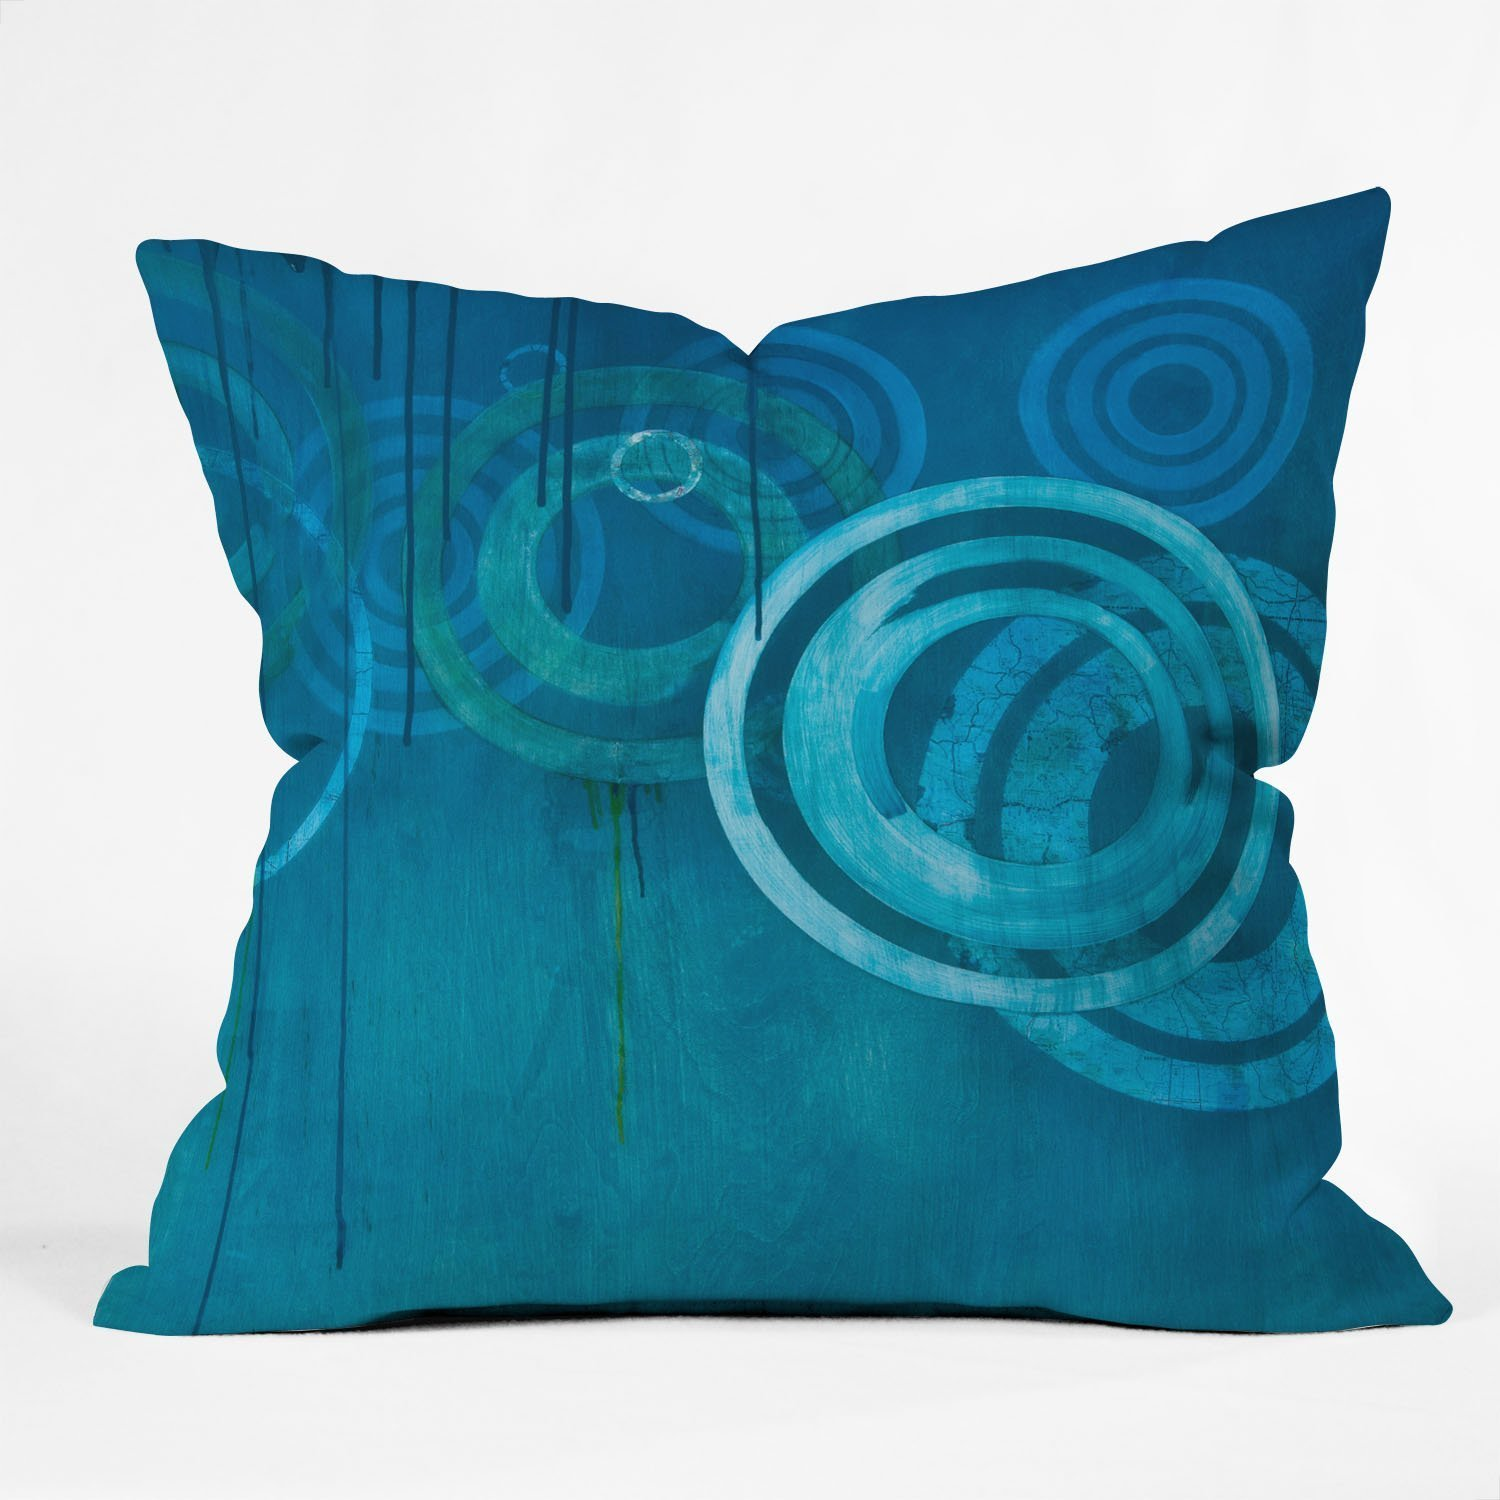 Deny Designs Stacey Schultz Circle World Green Throw Pillow 16 x 16 13715-thpo16